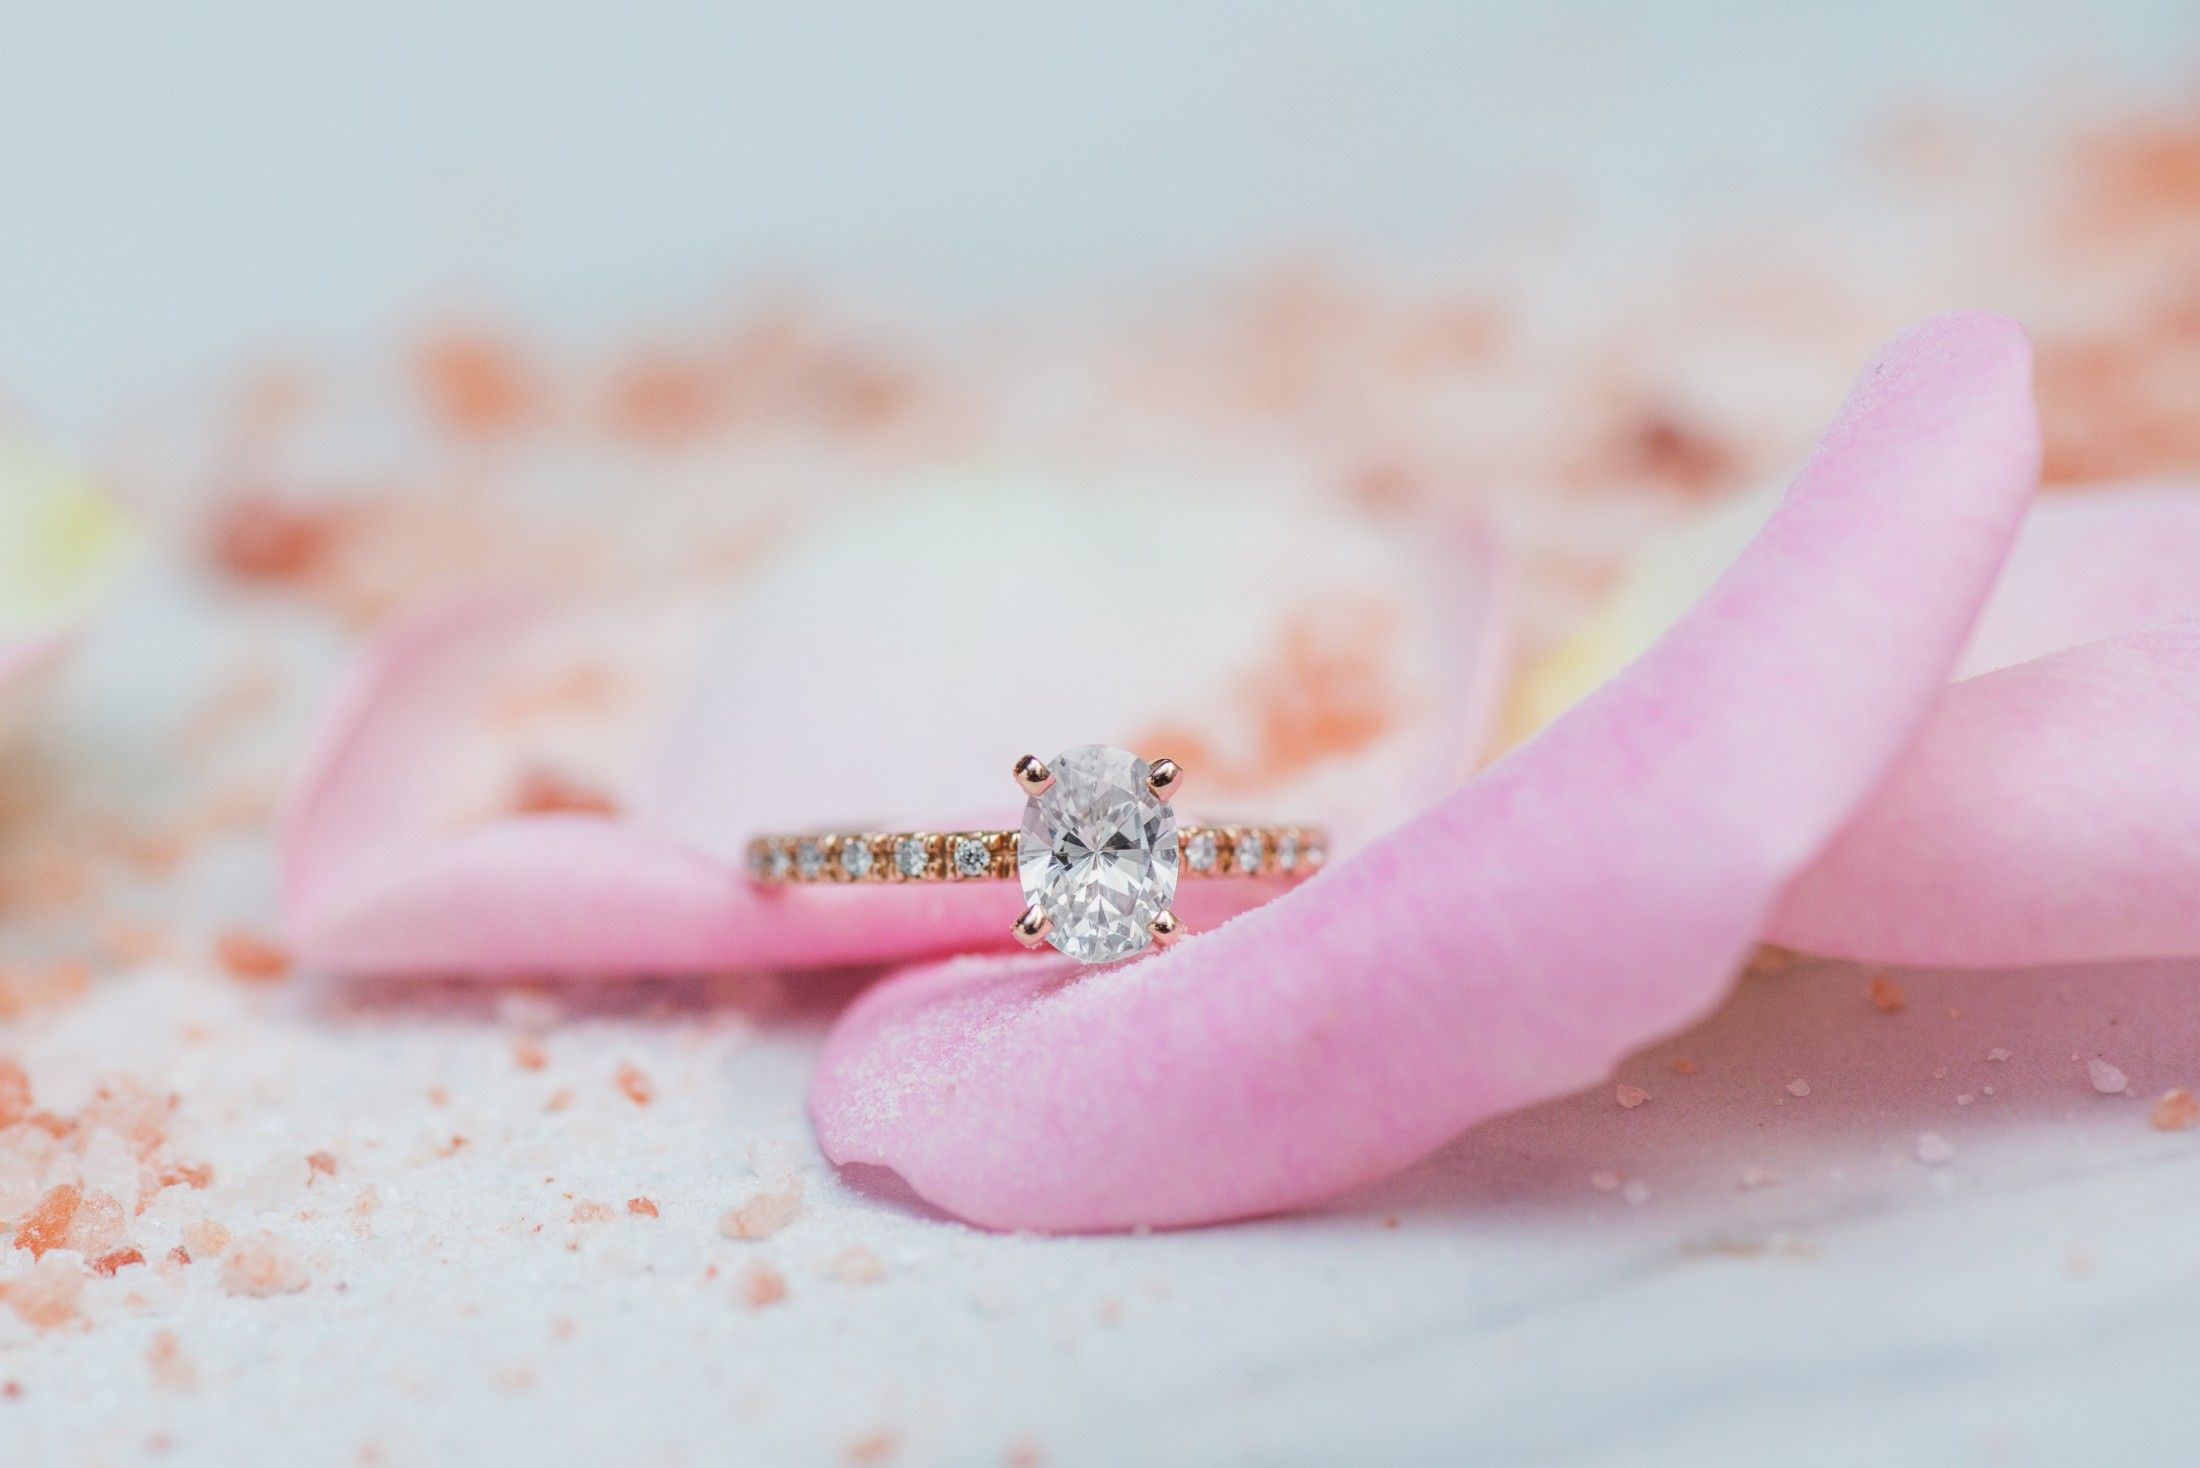 ad] Shop hundreds of beautiful rings at JamesAllen.com! | Jewelry ...